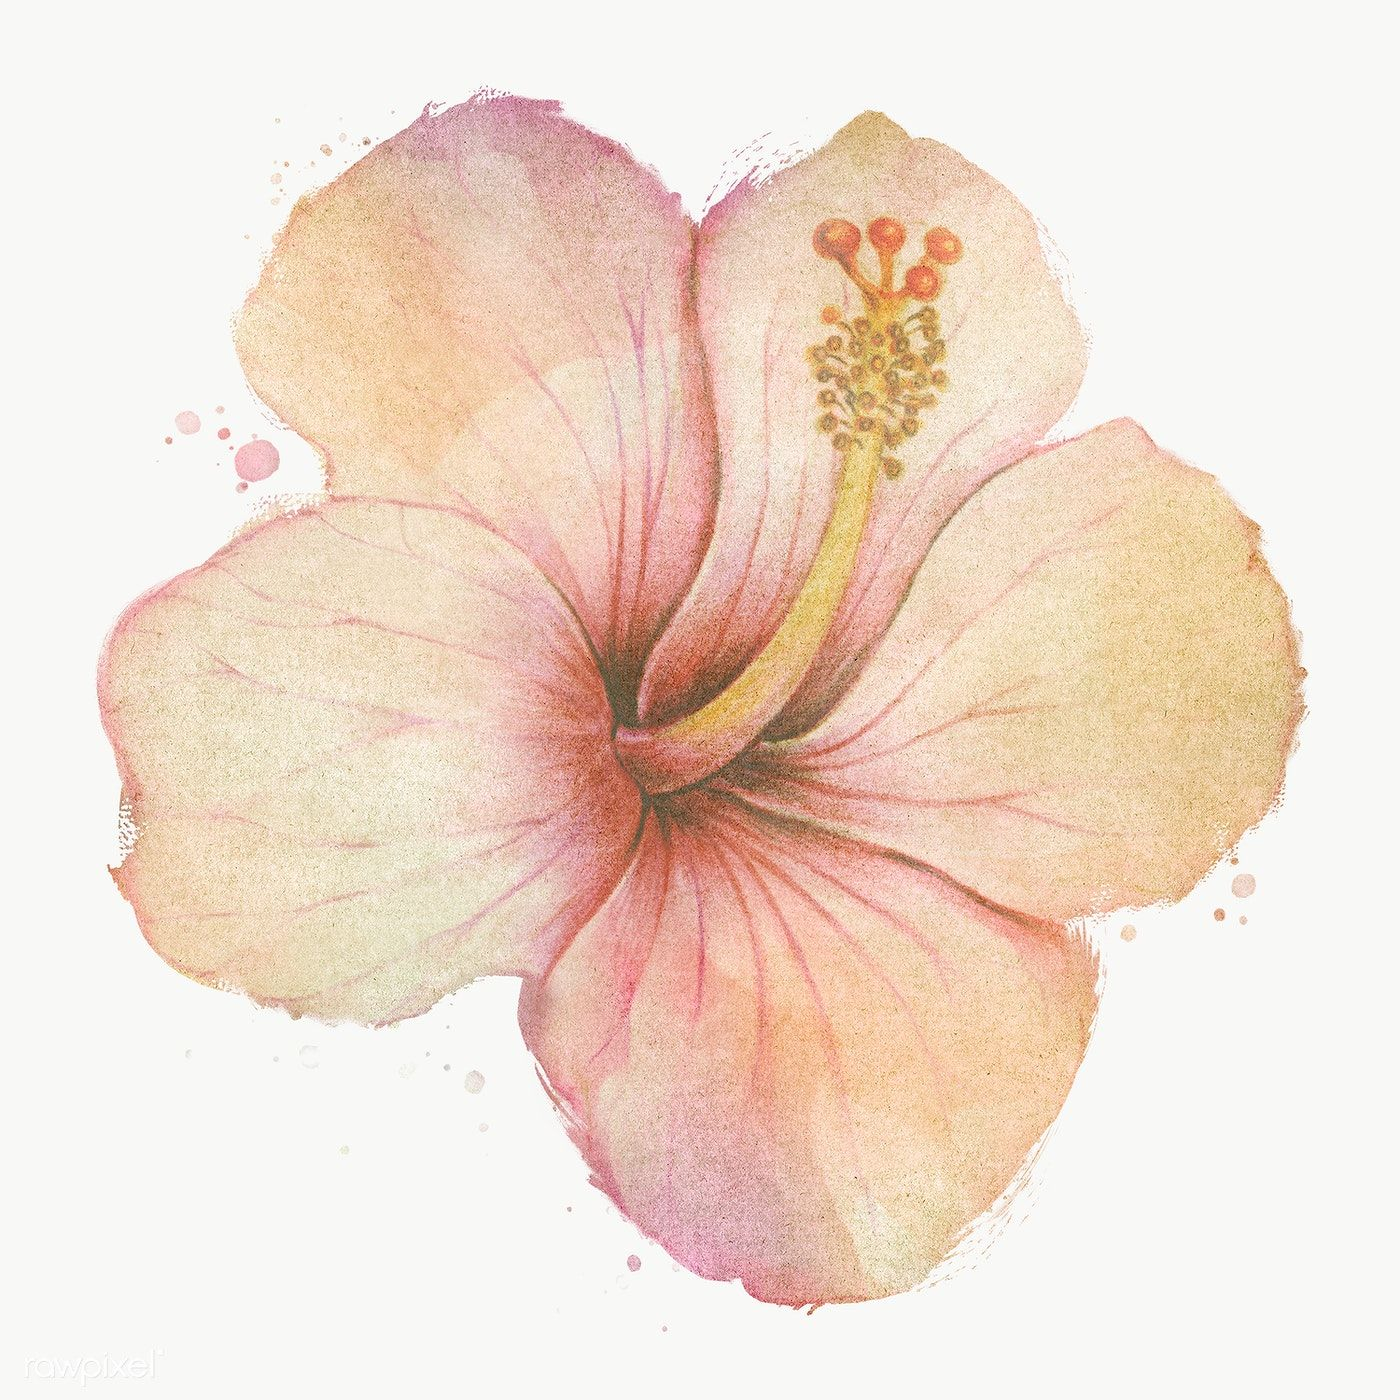 Hand Drawn Beige Hibiscus Flower Watercolor Style Design Element Free Image By Rawpixel Com In 2020 Watercolor Flowers Watercolor Flower Background Hibiscus Flowers